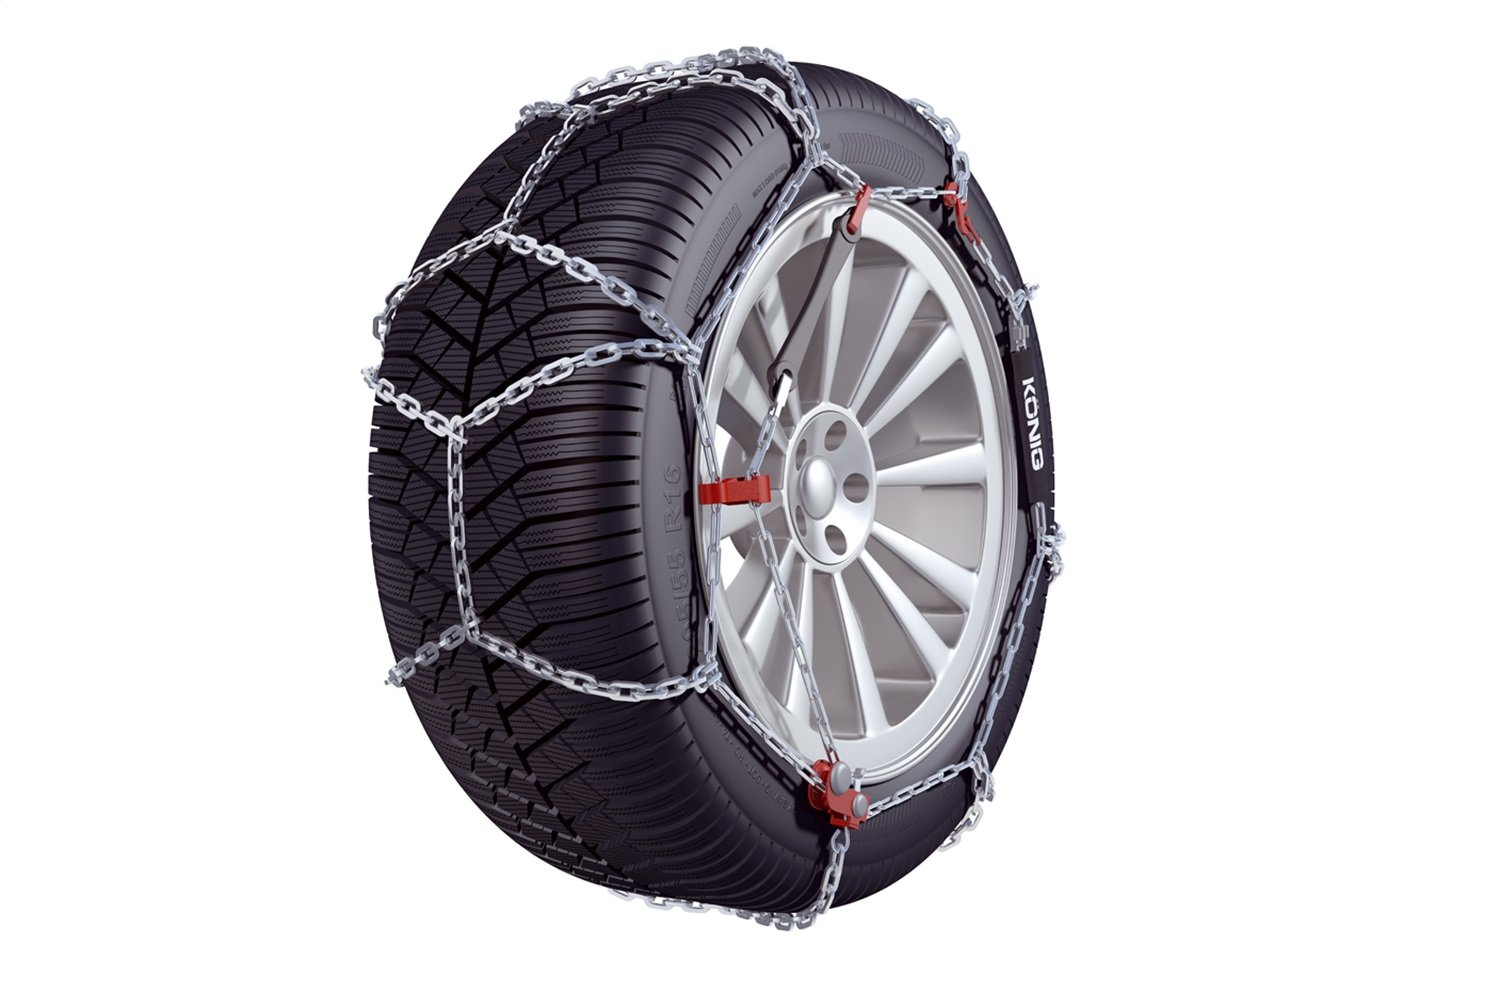 Thule 2004365090 12mm CB12 Passenger Car Snow Chain, Size 090 (Sold in pairs)